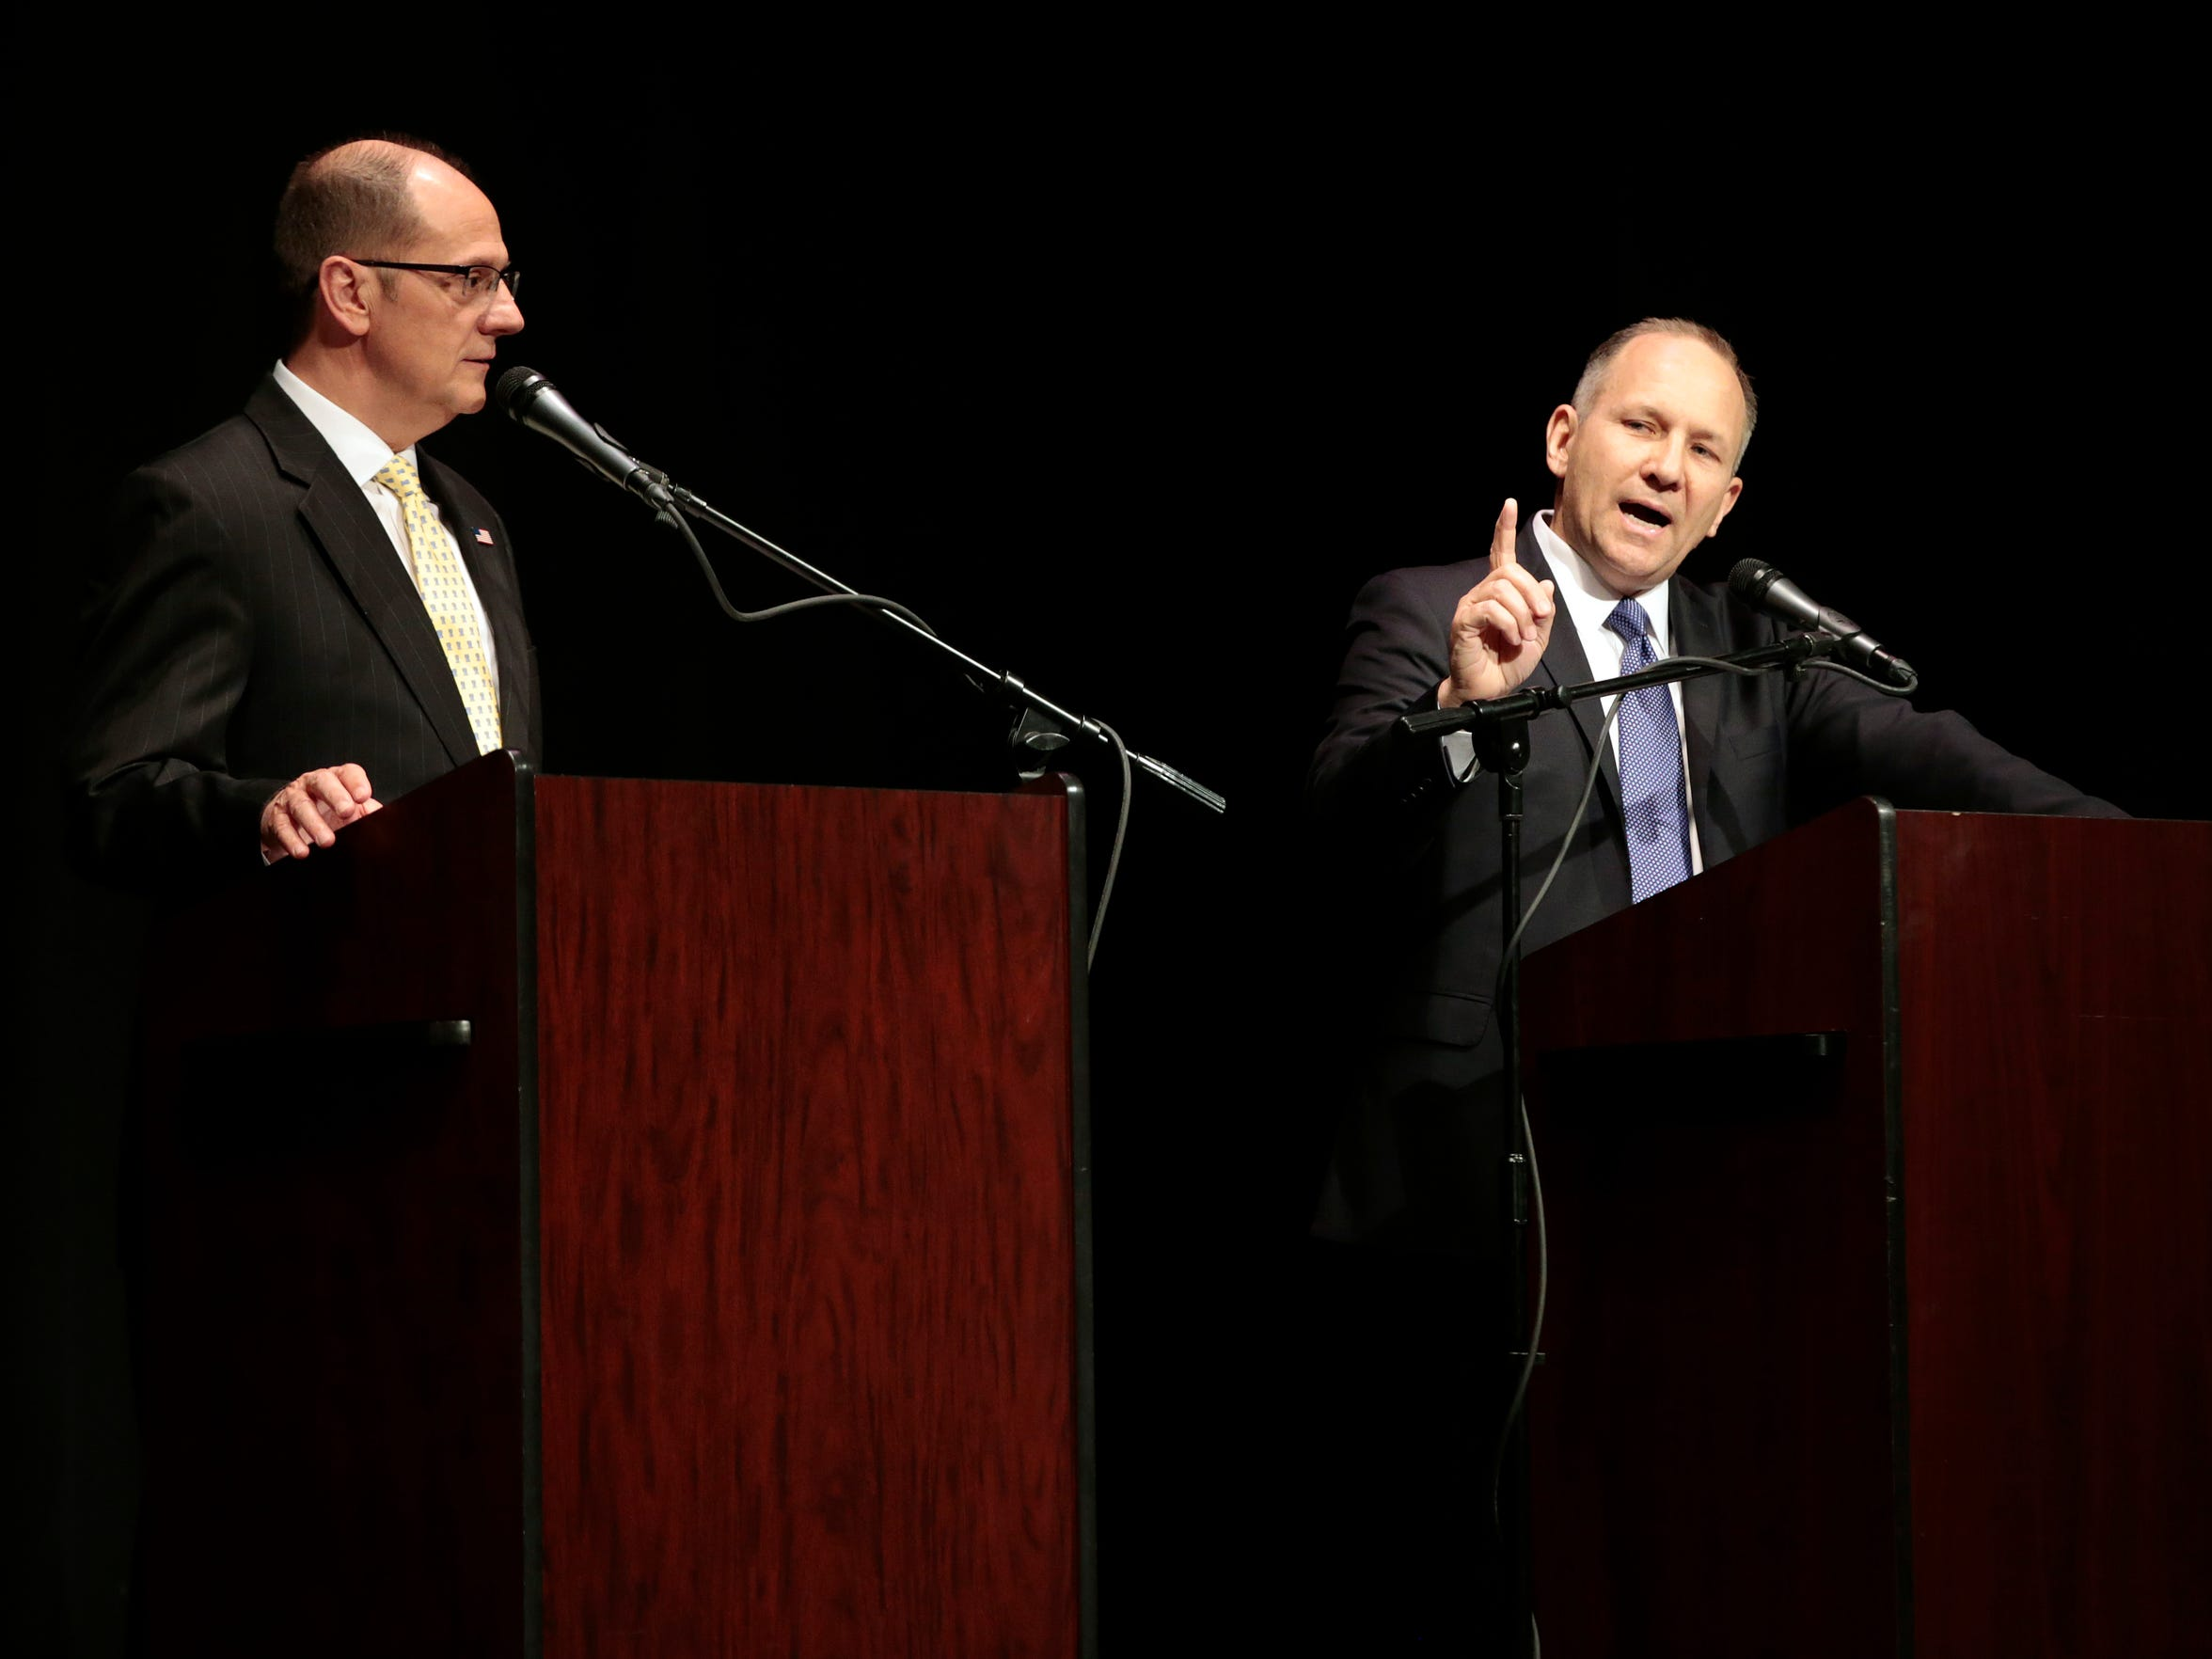 U.S. Rep. Lloyd Smucker, R-Pa., right, and challenger Chet Beiler.